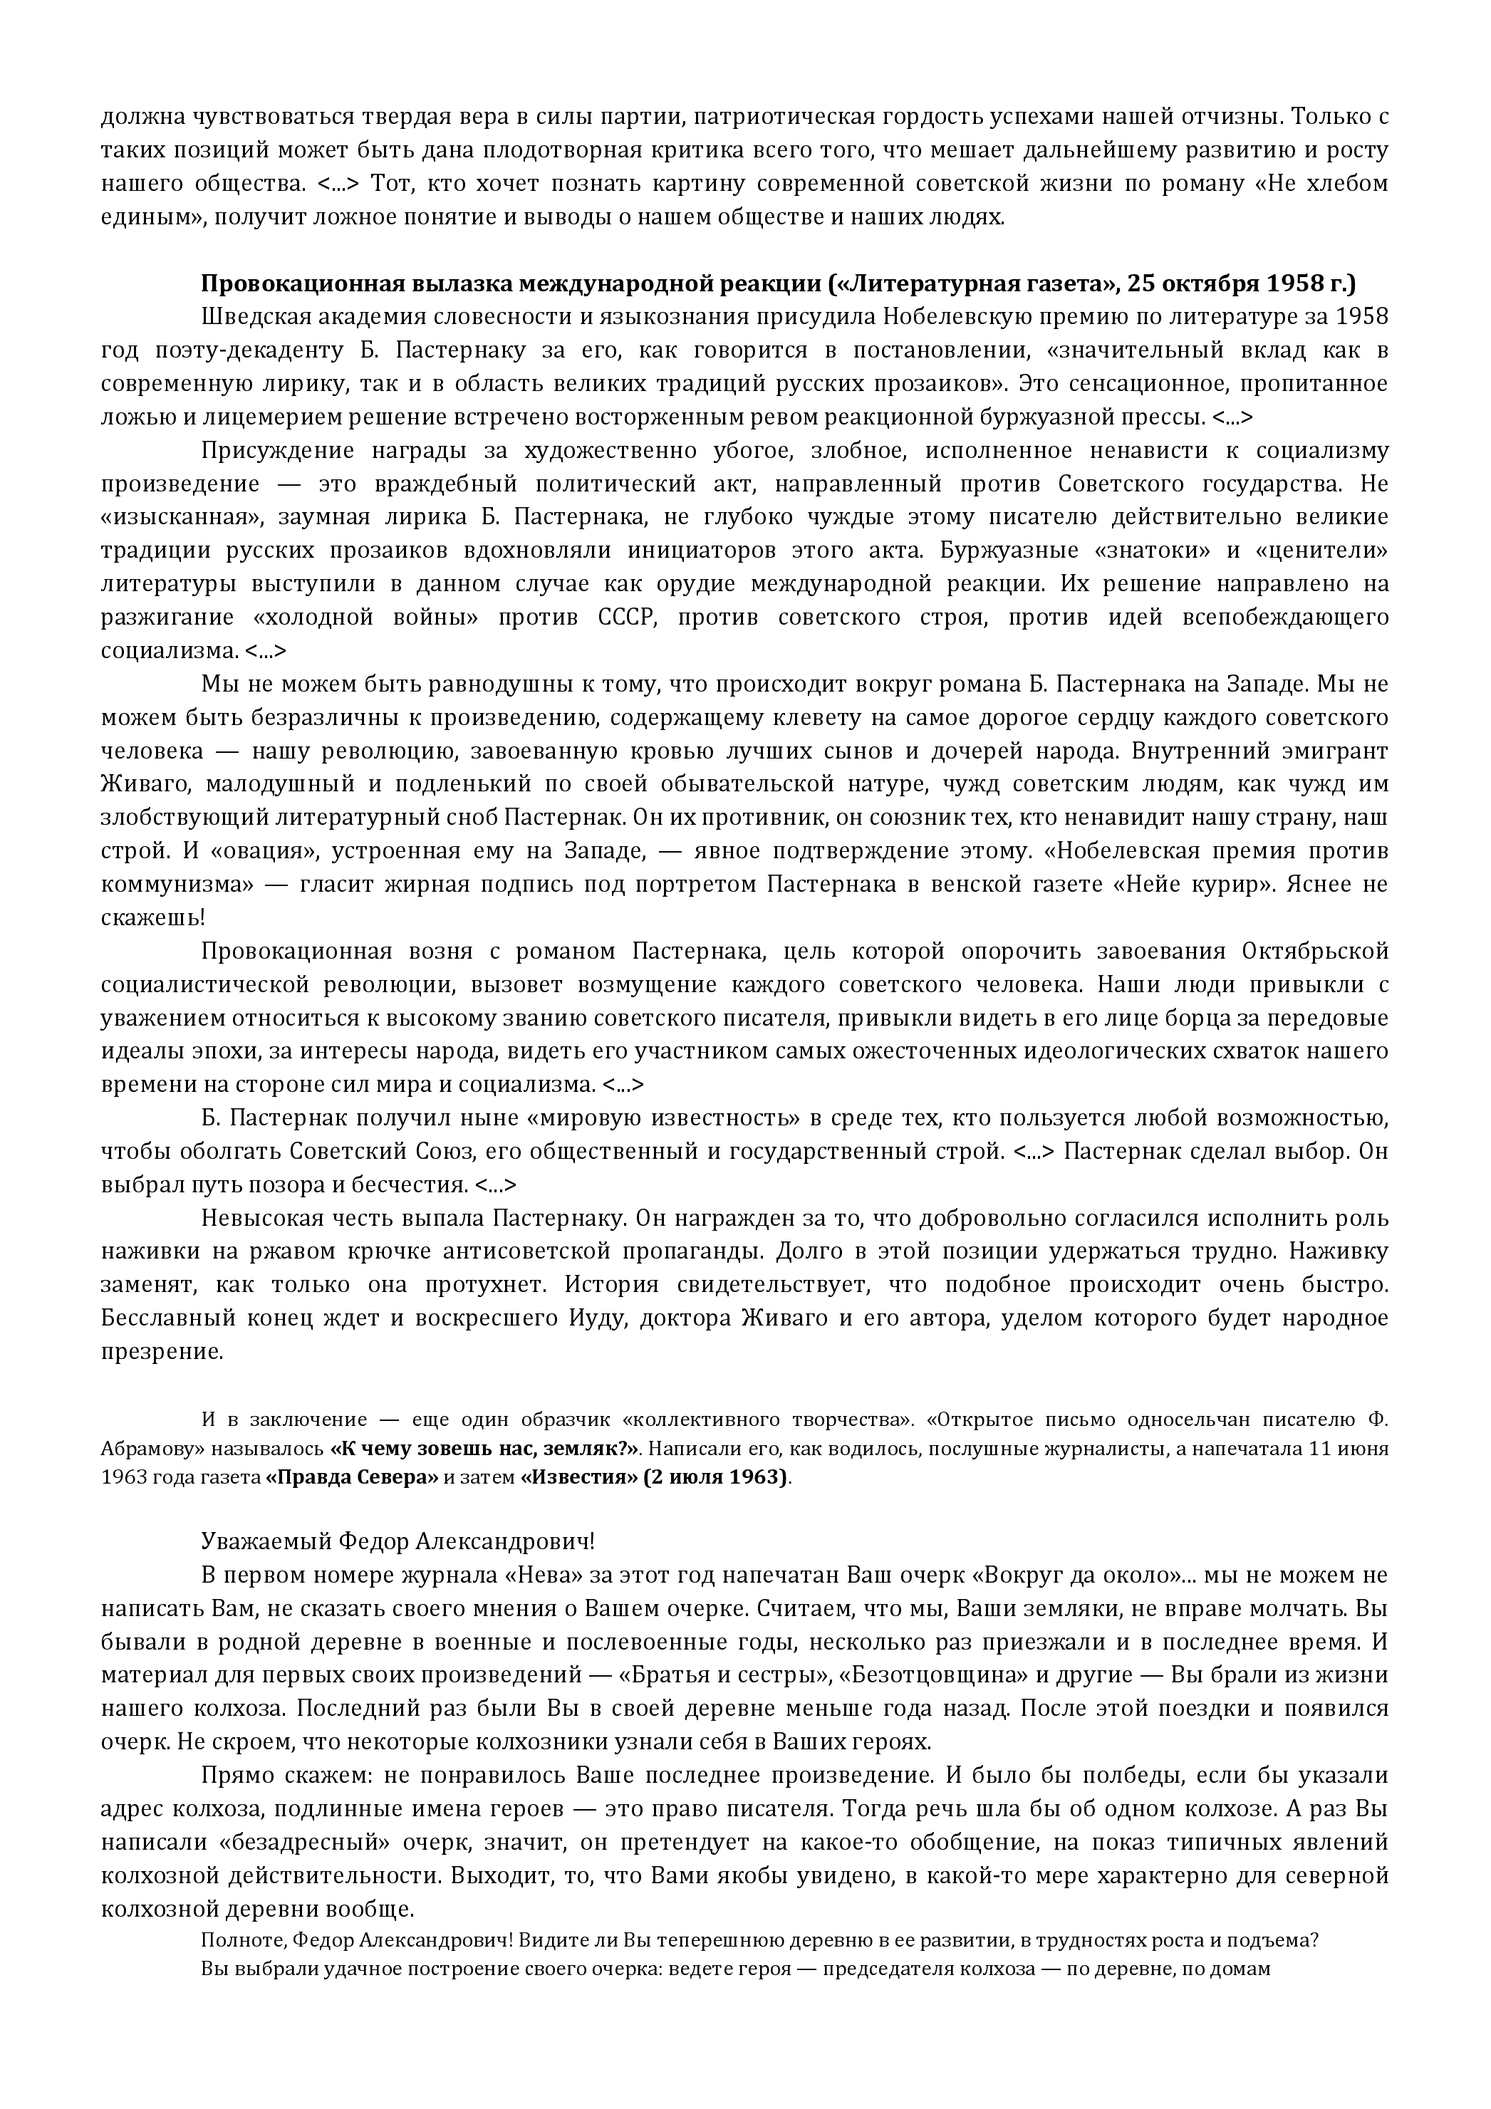 Page 14